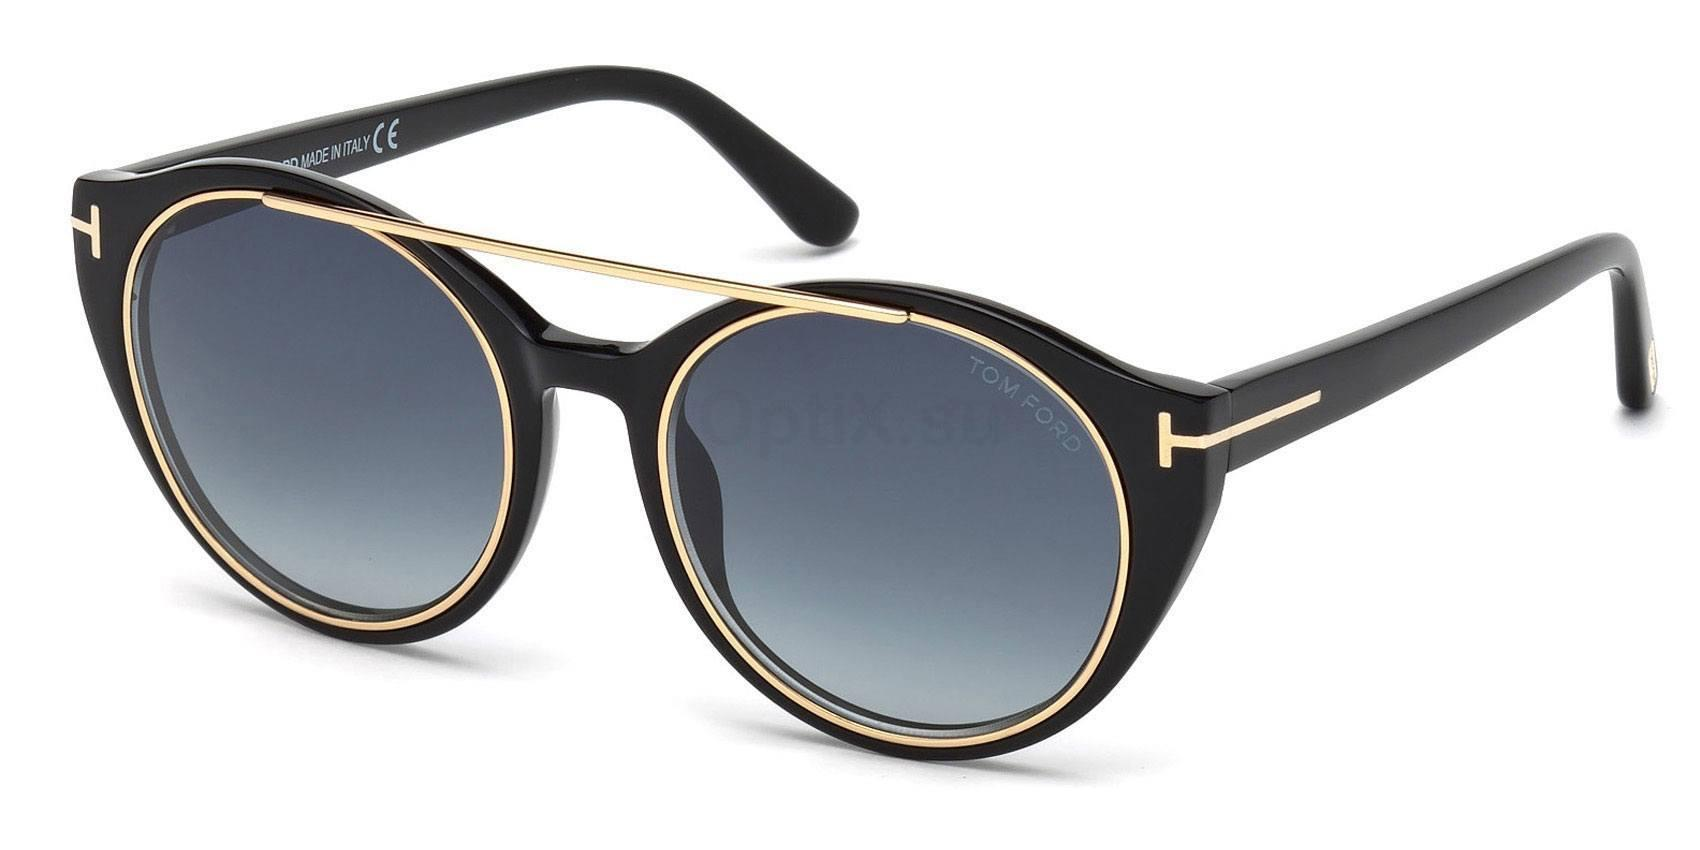 01W FT0383 , Tom Ford